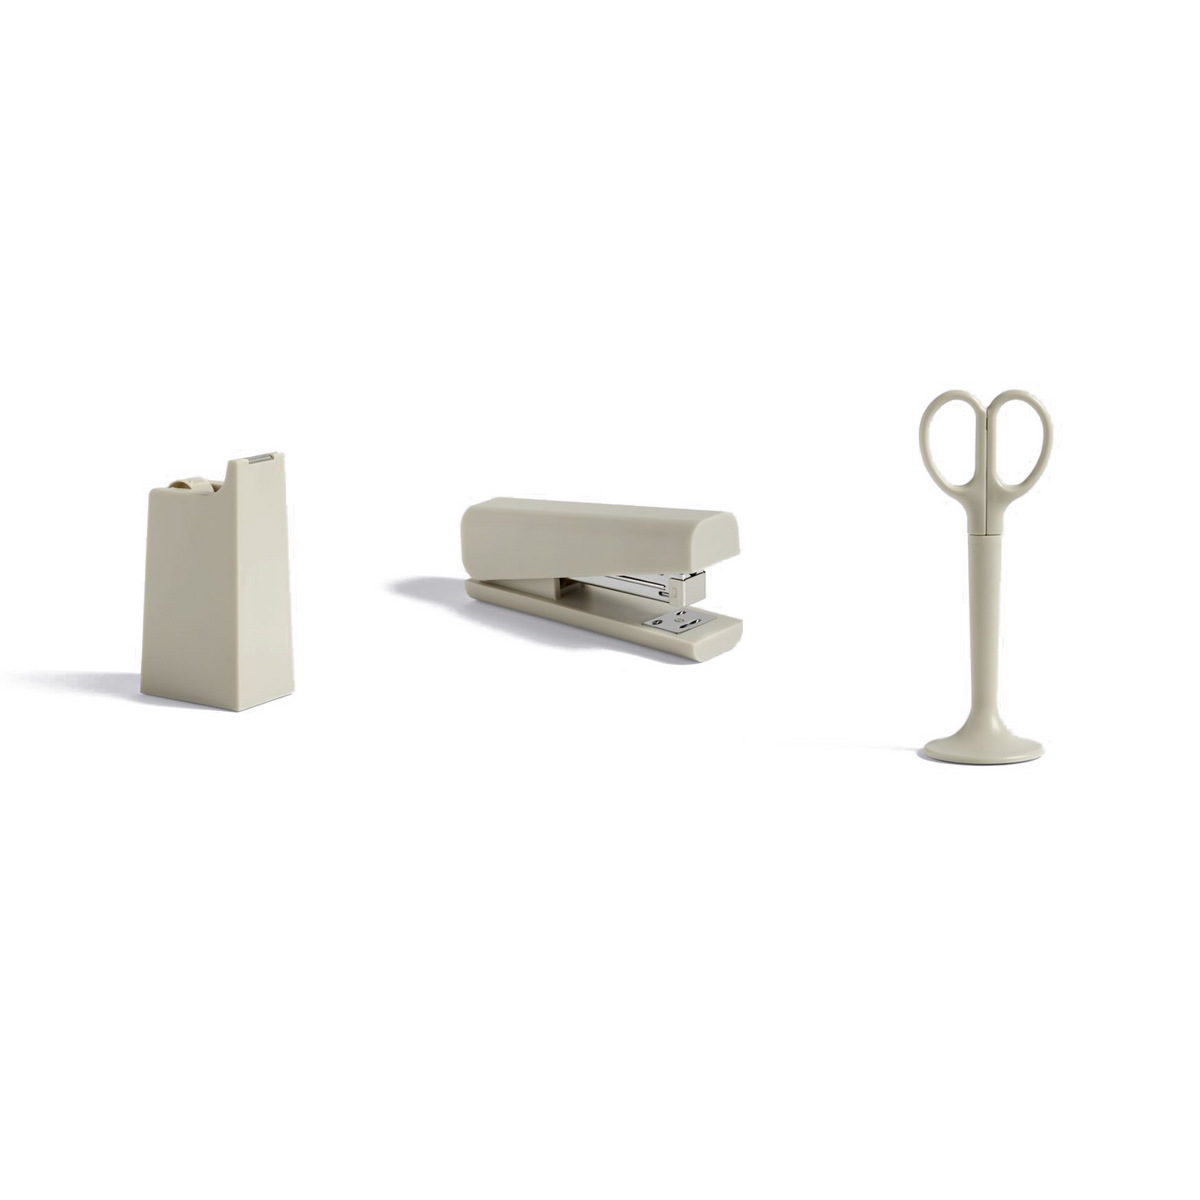 HAY Anything Desk Accessories Light Grey